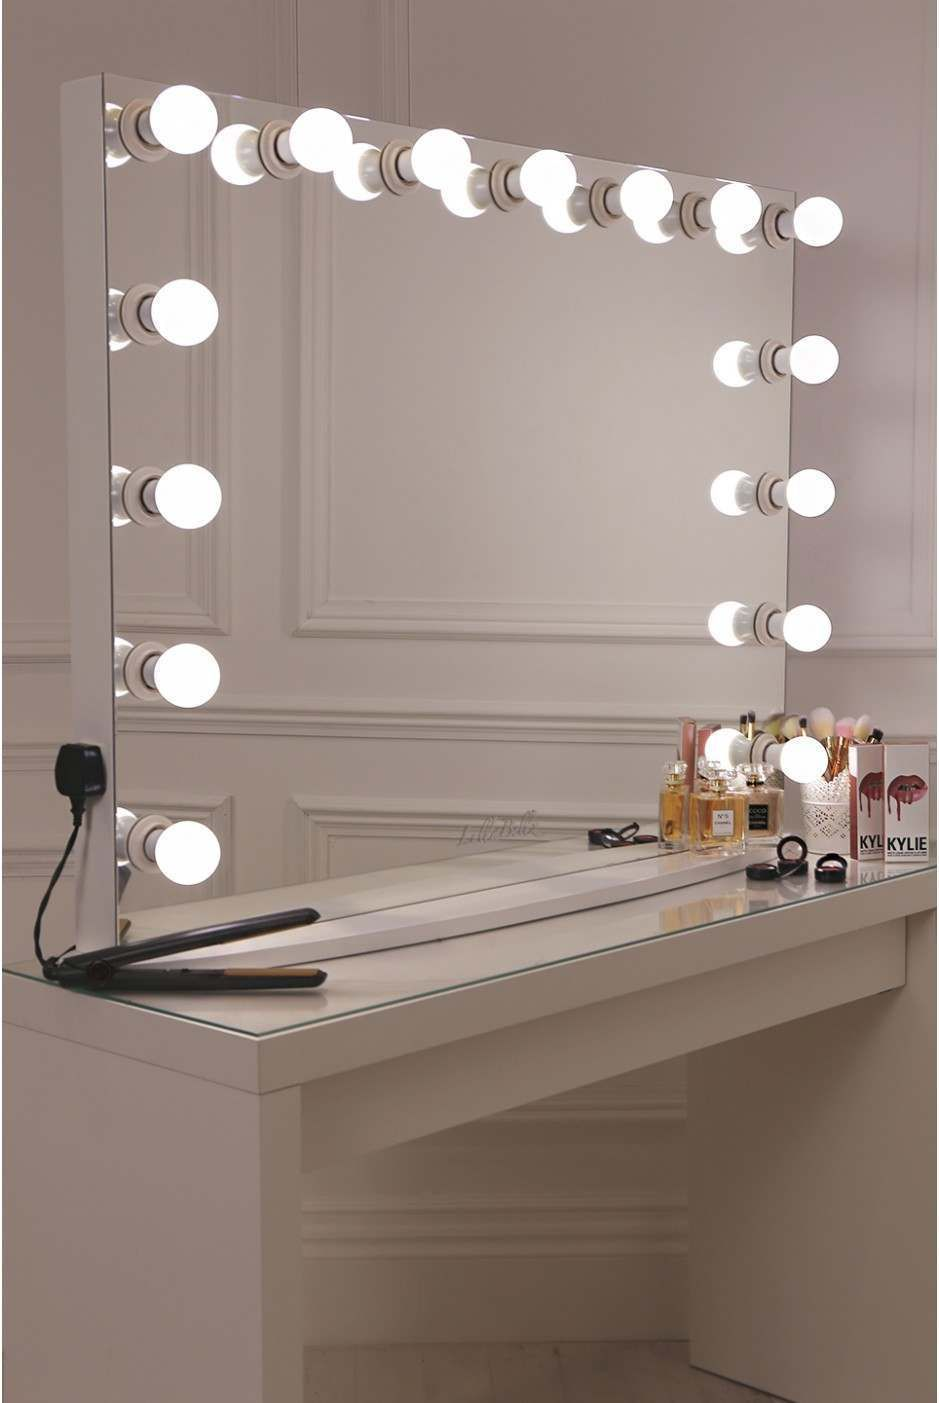 Diy vanity mirror with lights for bathroom and makeup station makeup vanity with lights makeup vanity with lights ikea makeup vanity table with lighted mirror professional makeup vanity with lights mirror vanity mozeypictures Gallery